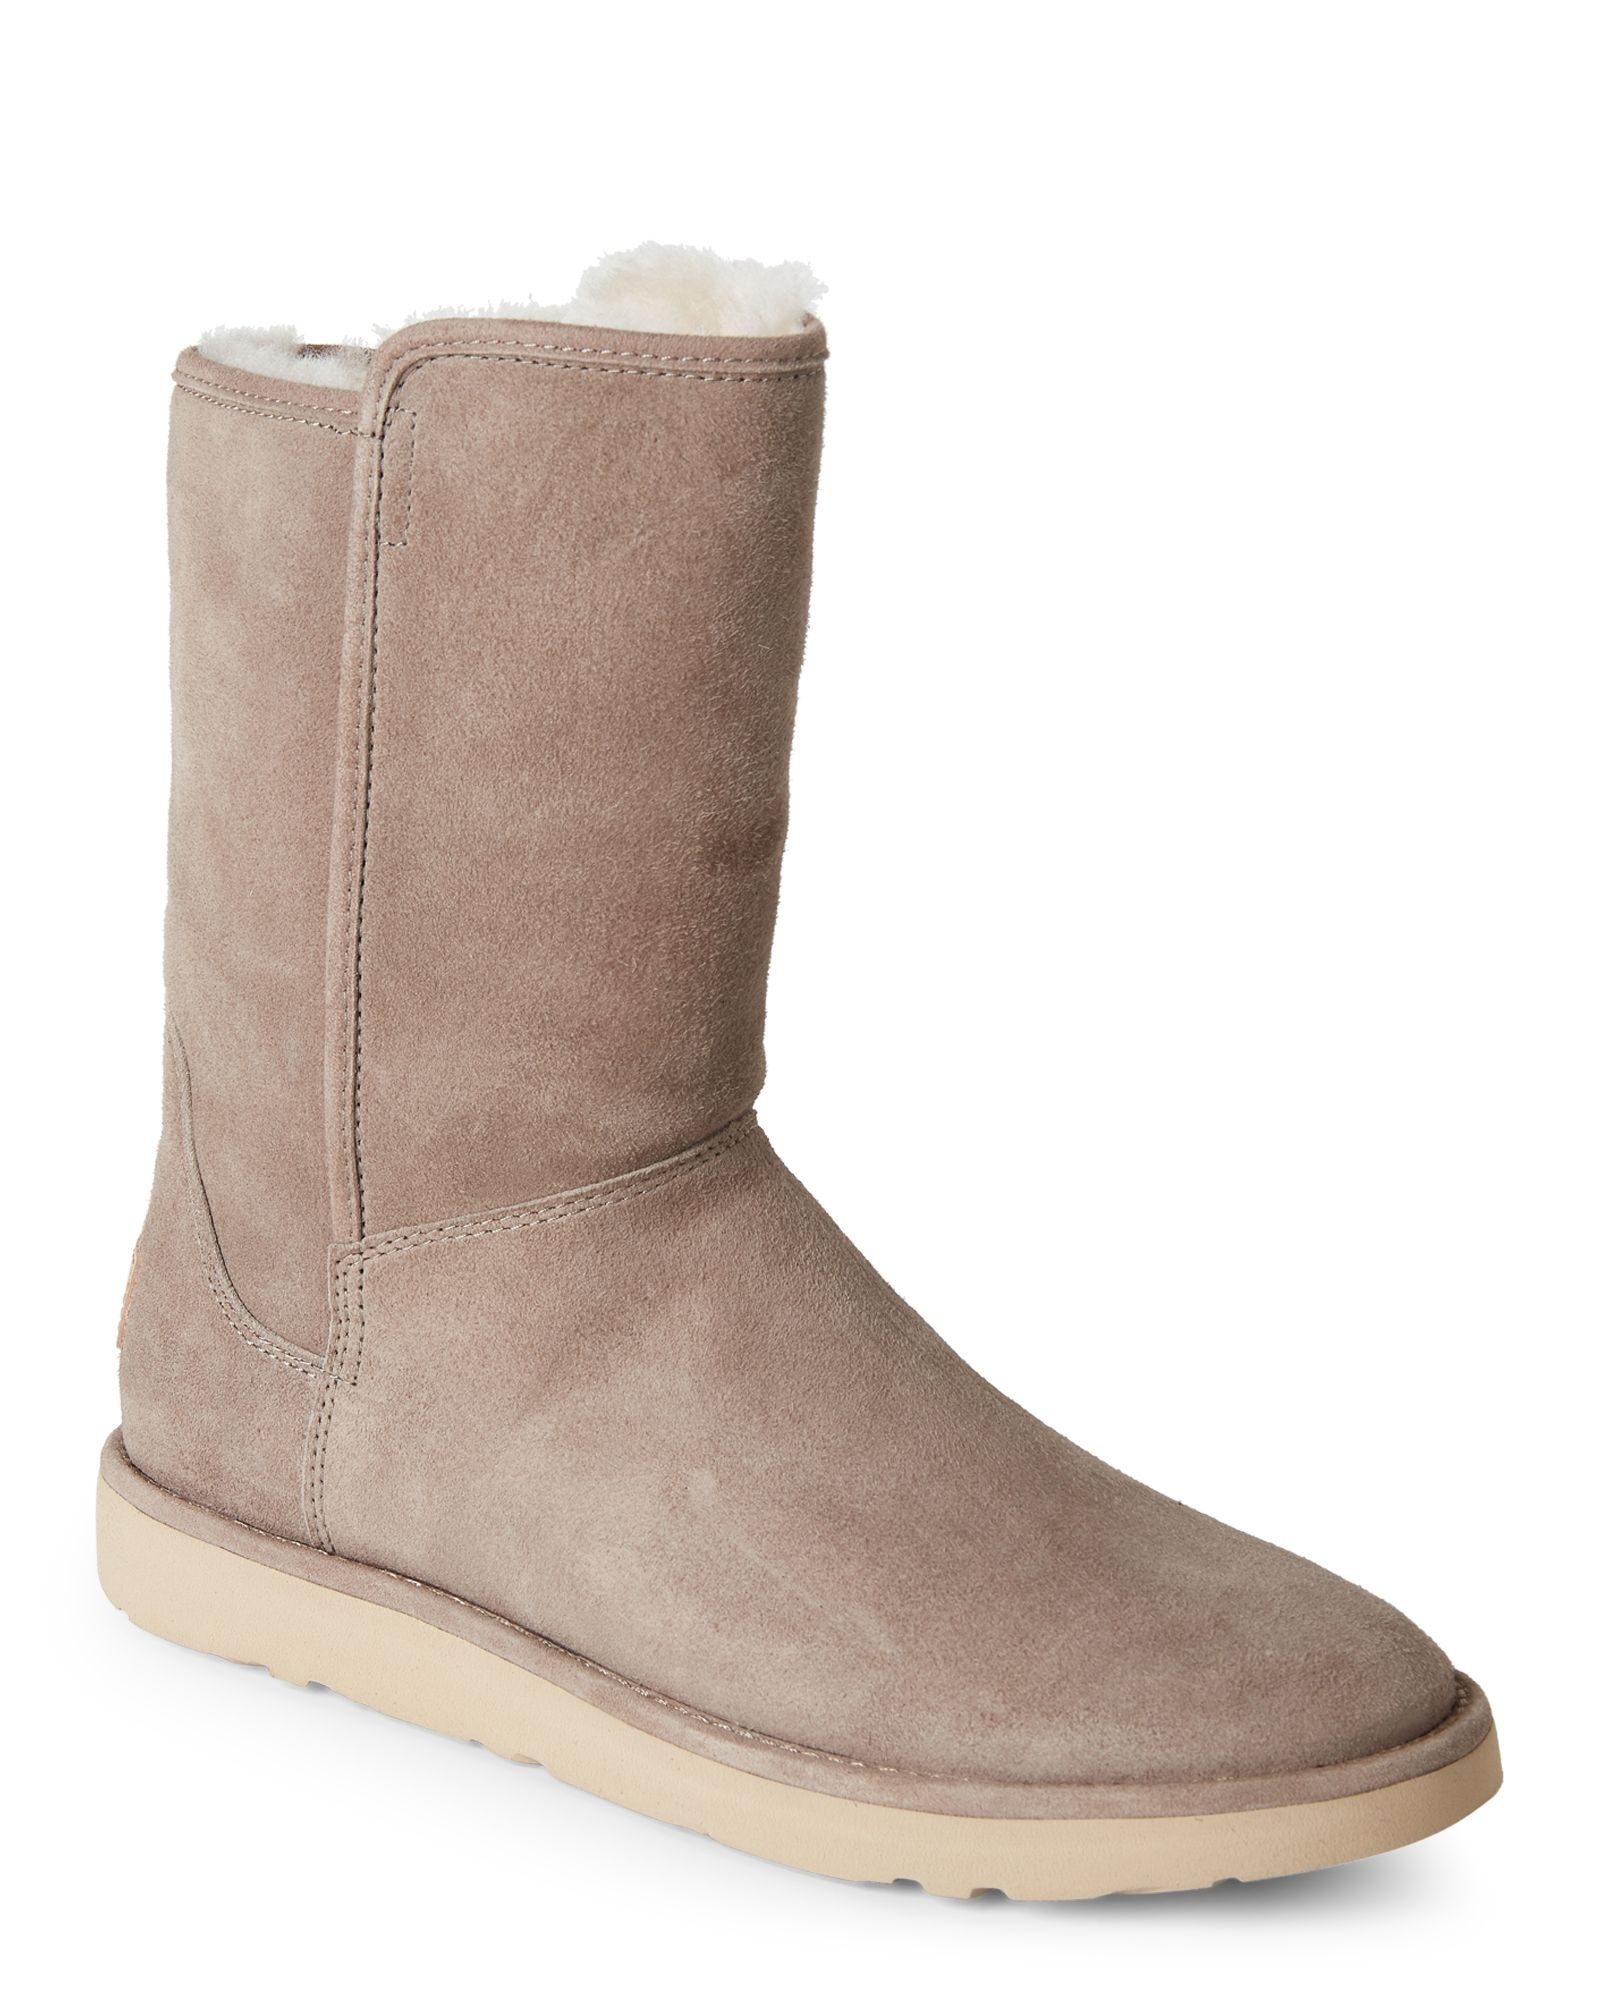 8acdc74a1a2 Ugg Australia Clay Abree Short Fur-Lined Boots | *Apparel ...